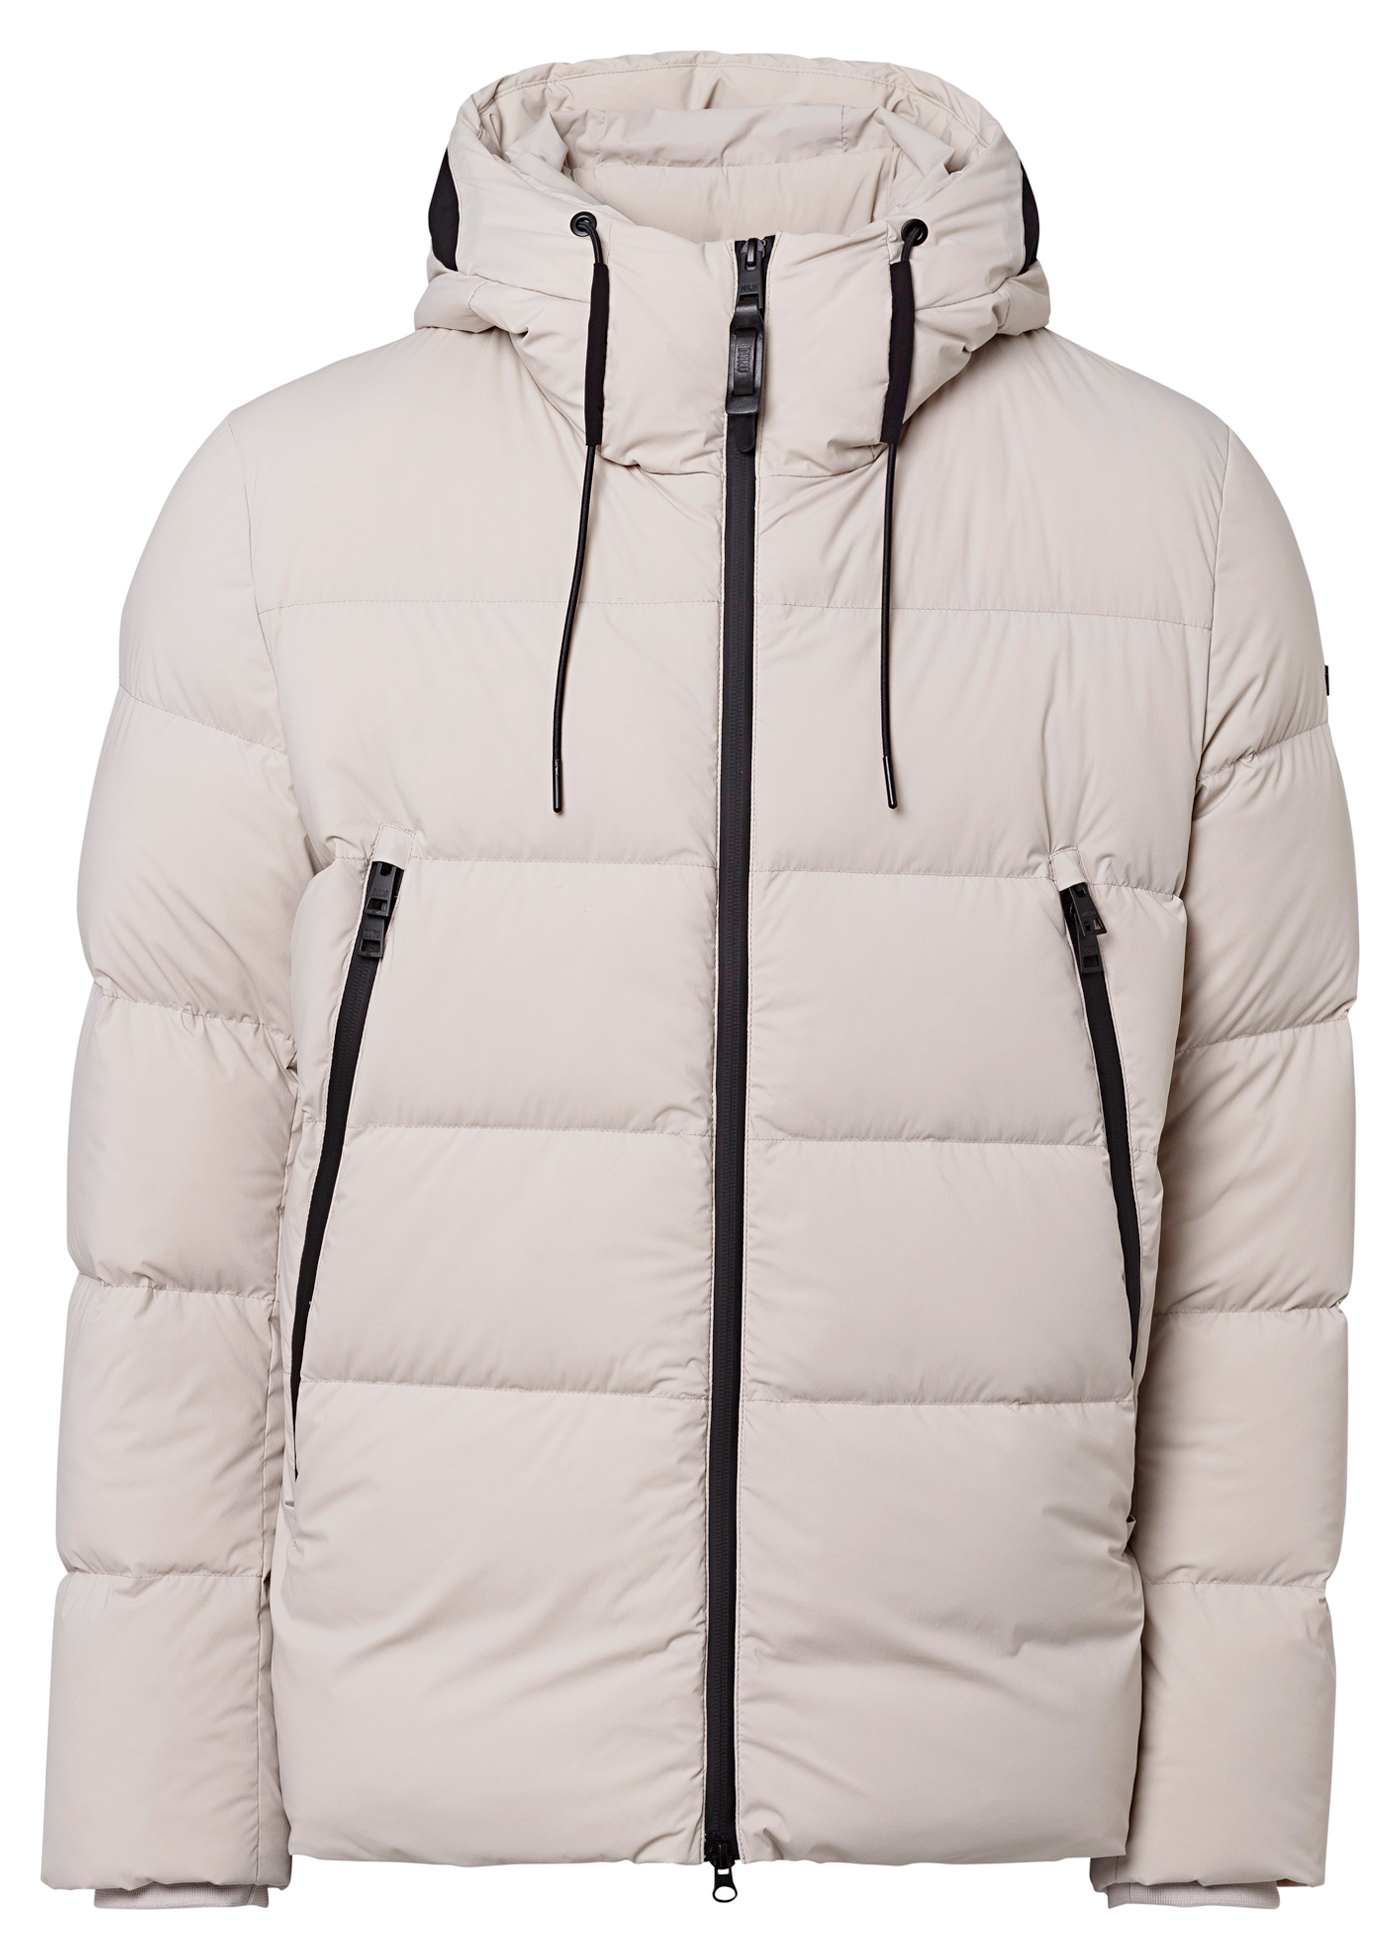 DOWN JACKET Jump Licosa image number 0